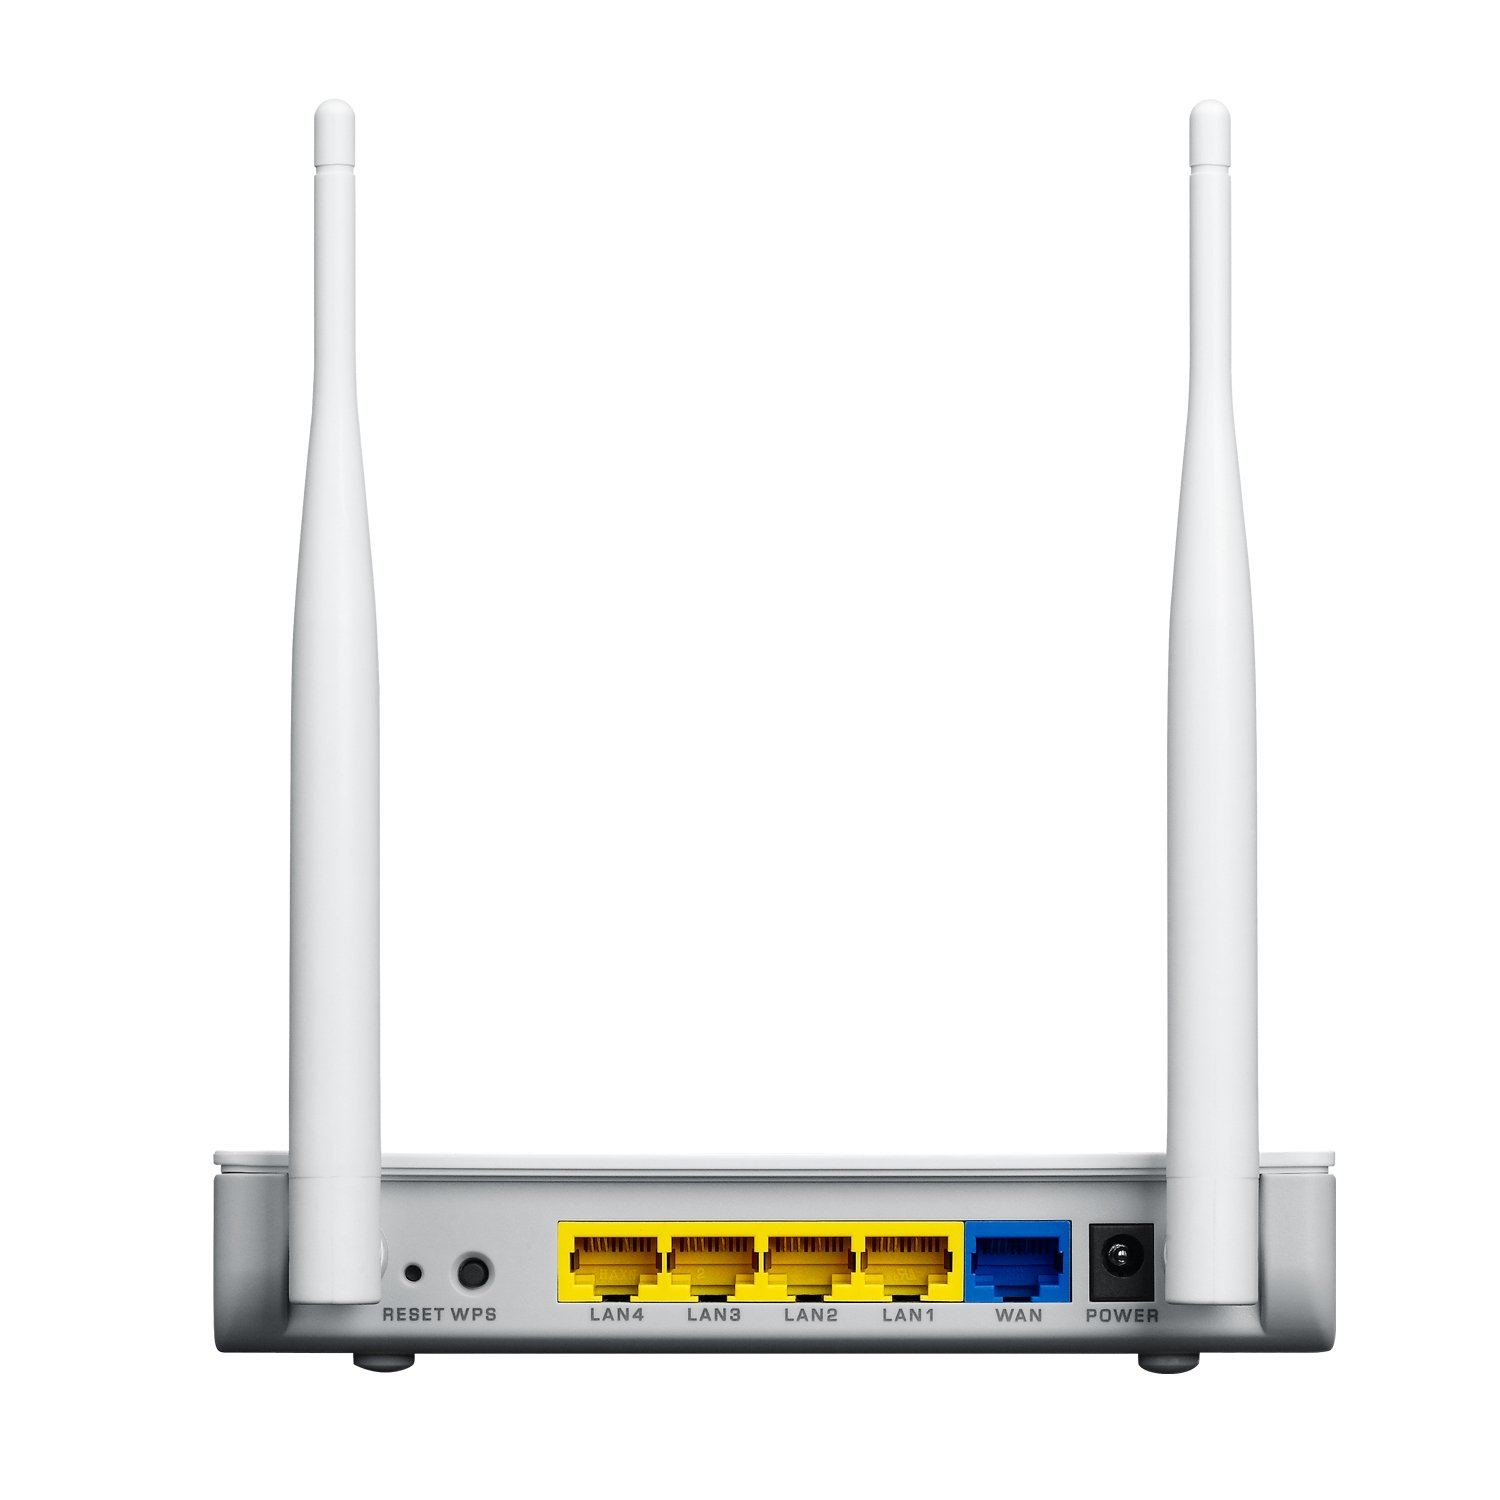 hight resolution of zyxel nbg 418n ieee 802 11n wireless router 2 40 ghz ism band 2 x antenna 300 mbit s wireless speed 4 x network port 1 x broadband port fast